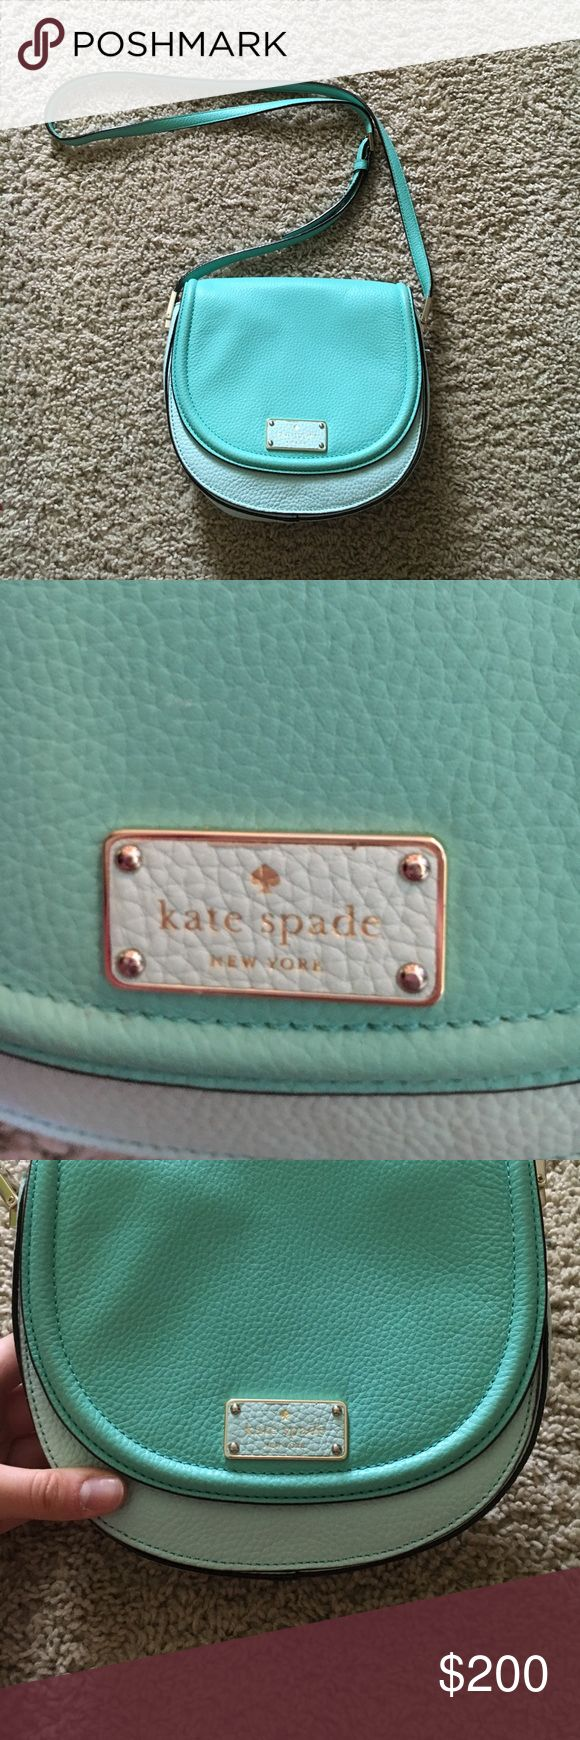 Kate Spade Purse This kate spade purse is in perfect condition. It was used a couple of times and has no damage, stains, or any wear on the purse. The color is very close to Tiffany Blue! It is a cross body bag that closes with a magnet. The inside in separated into two sections and one of the sections has a zip compartment. The logo of kate spade is on the front of the purse! 💗 kate spade Bags